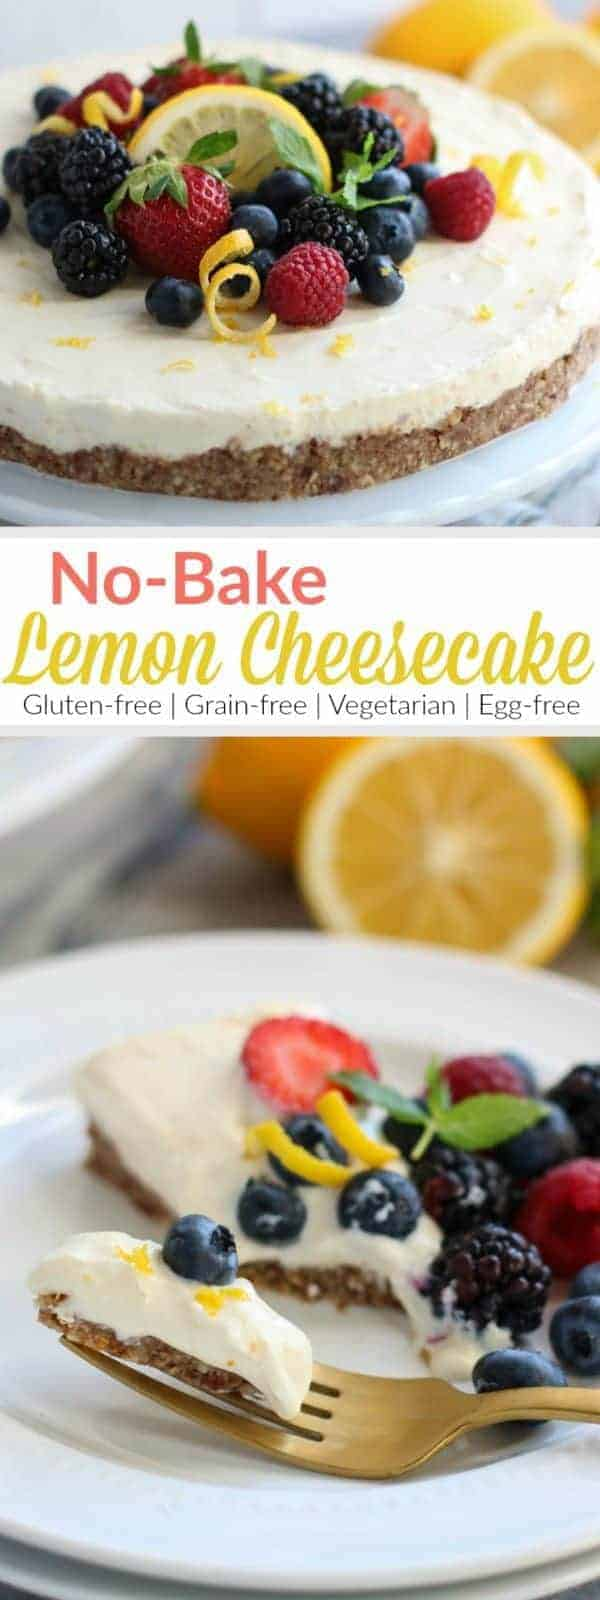 No-Bake Lemon Cheesecake   A light and tangy cheesecake without all the fuss! Serve it with fresh berries and extra lime zest for a simple yet elegant dessert.   The Real Food Dietitians   https://therealfooddietitians.com/no-bake-lemon-cheesecake/